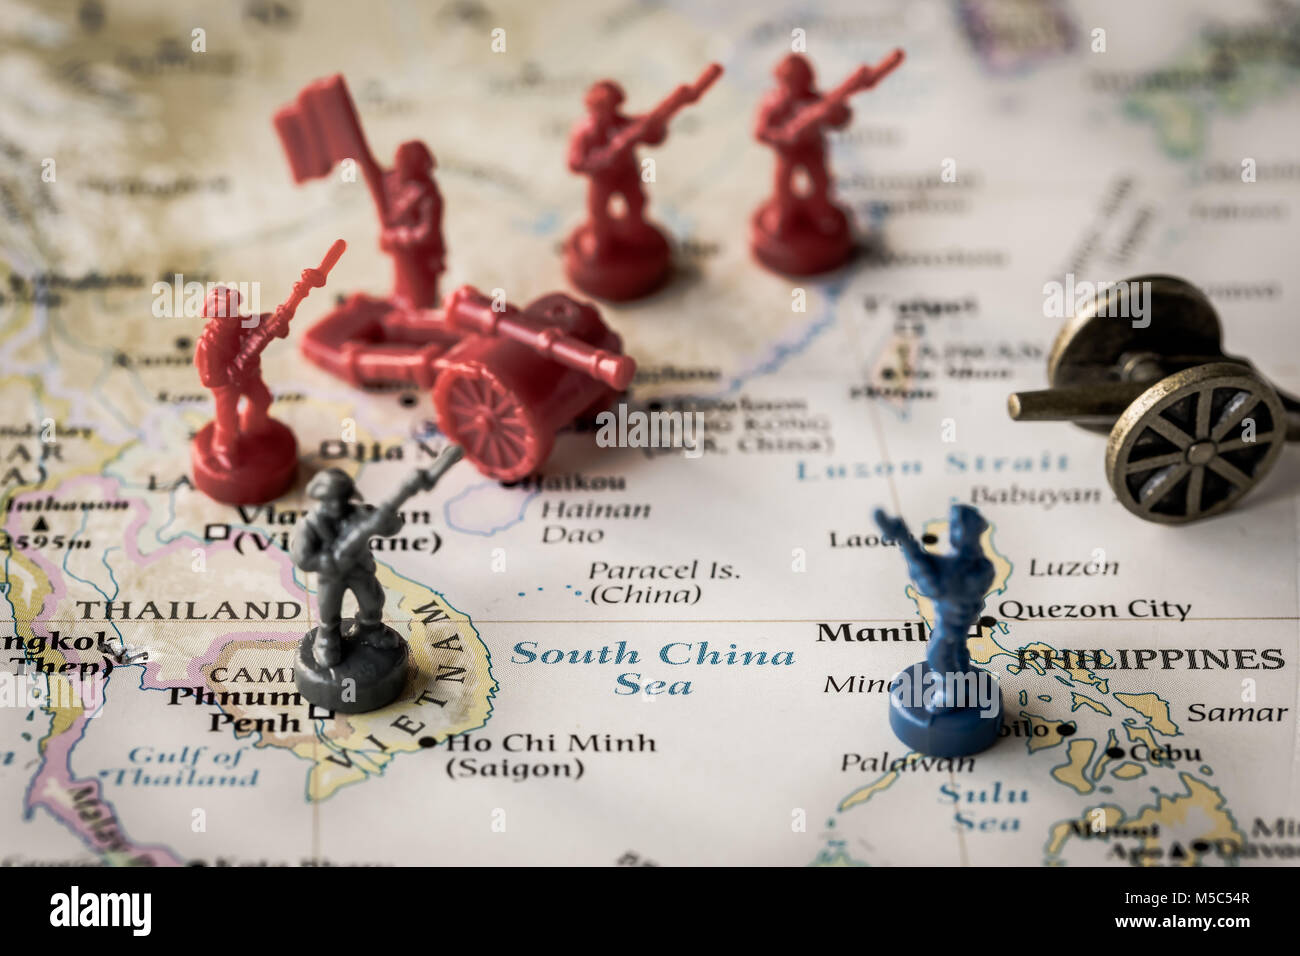 Macro close up of toy soldiers on a map representing conflict and tensions in the South China Sea - Stock Image